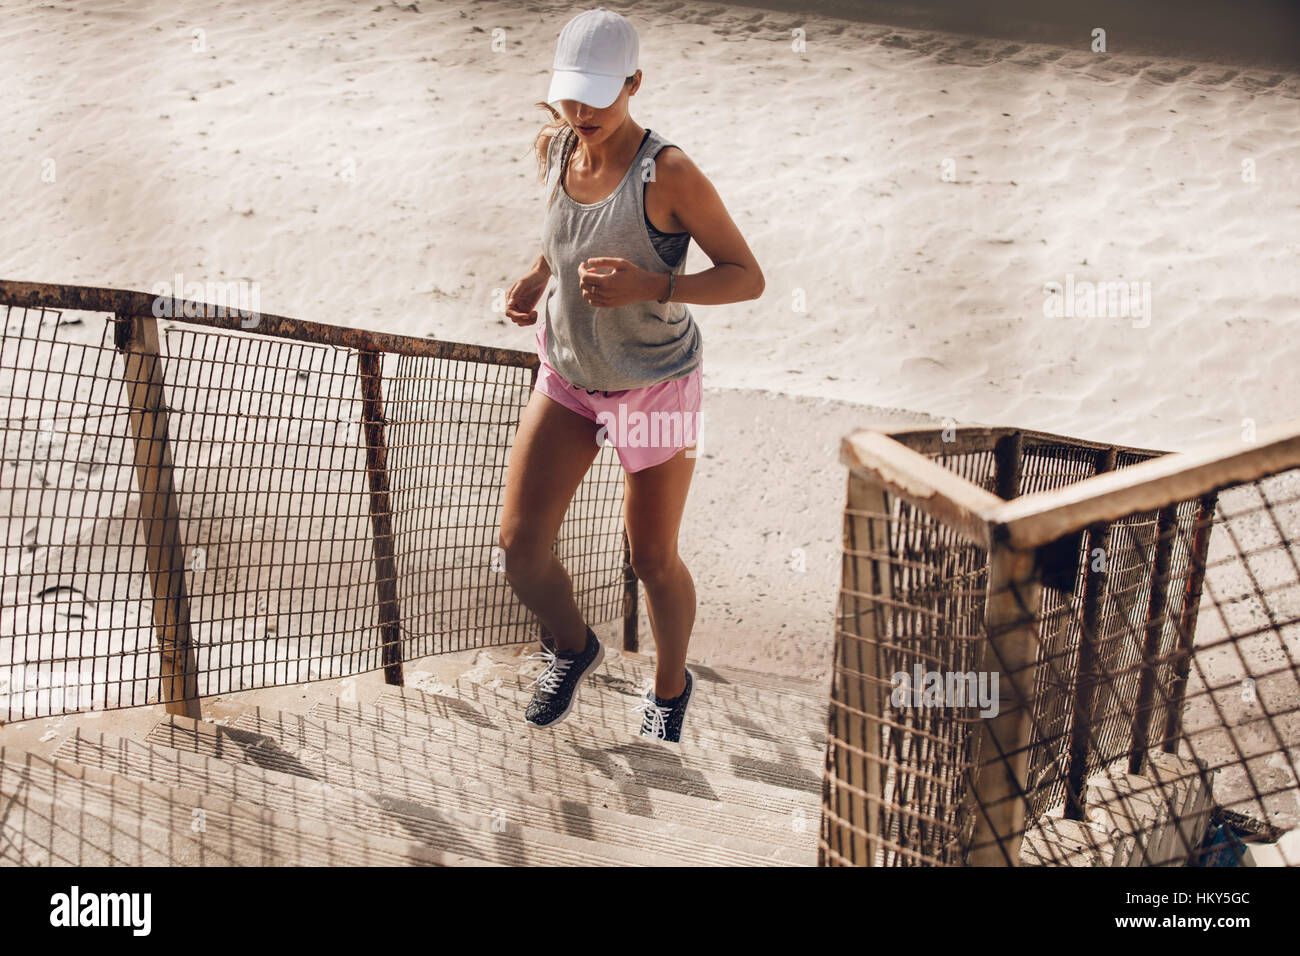 Fit young woman running up the staircase on beach. Young female runner working out on steps on sea shore. - Stock Image